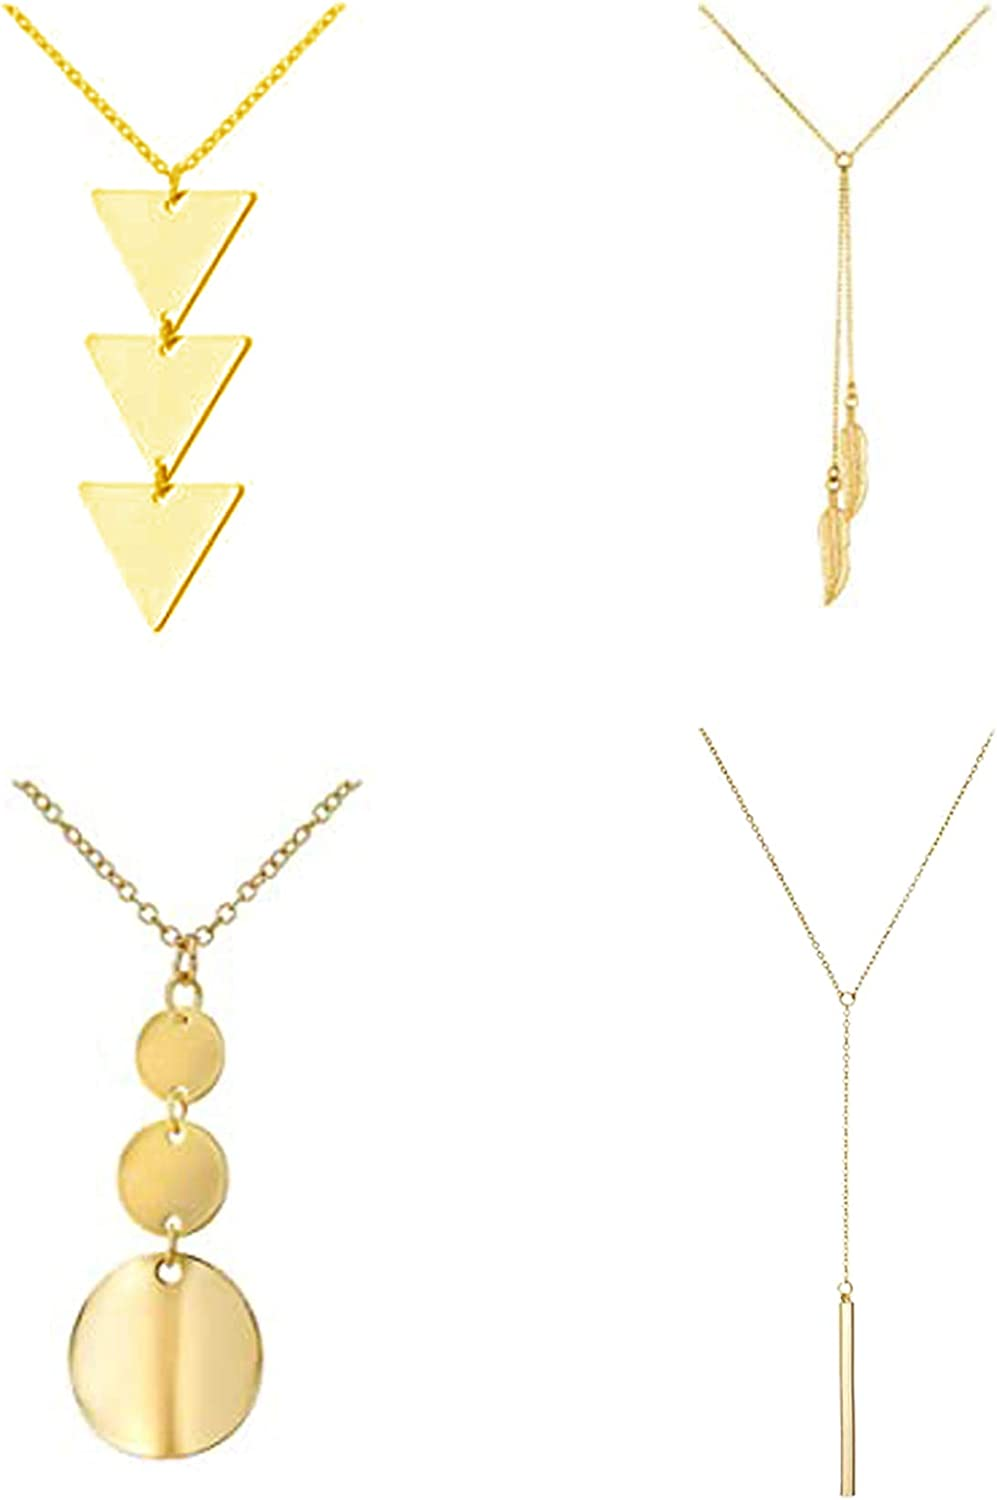 4Pcs Long Pendant Necklace Cheap mail order sales For Tassel Women Three Lock Triangle OFFer